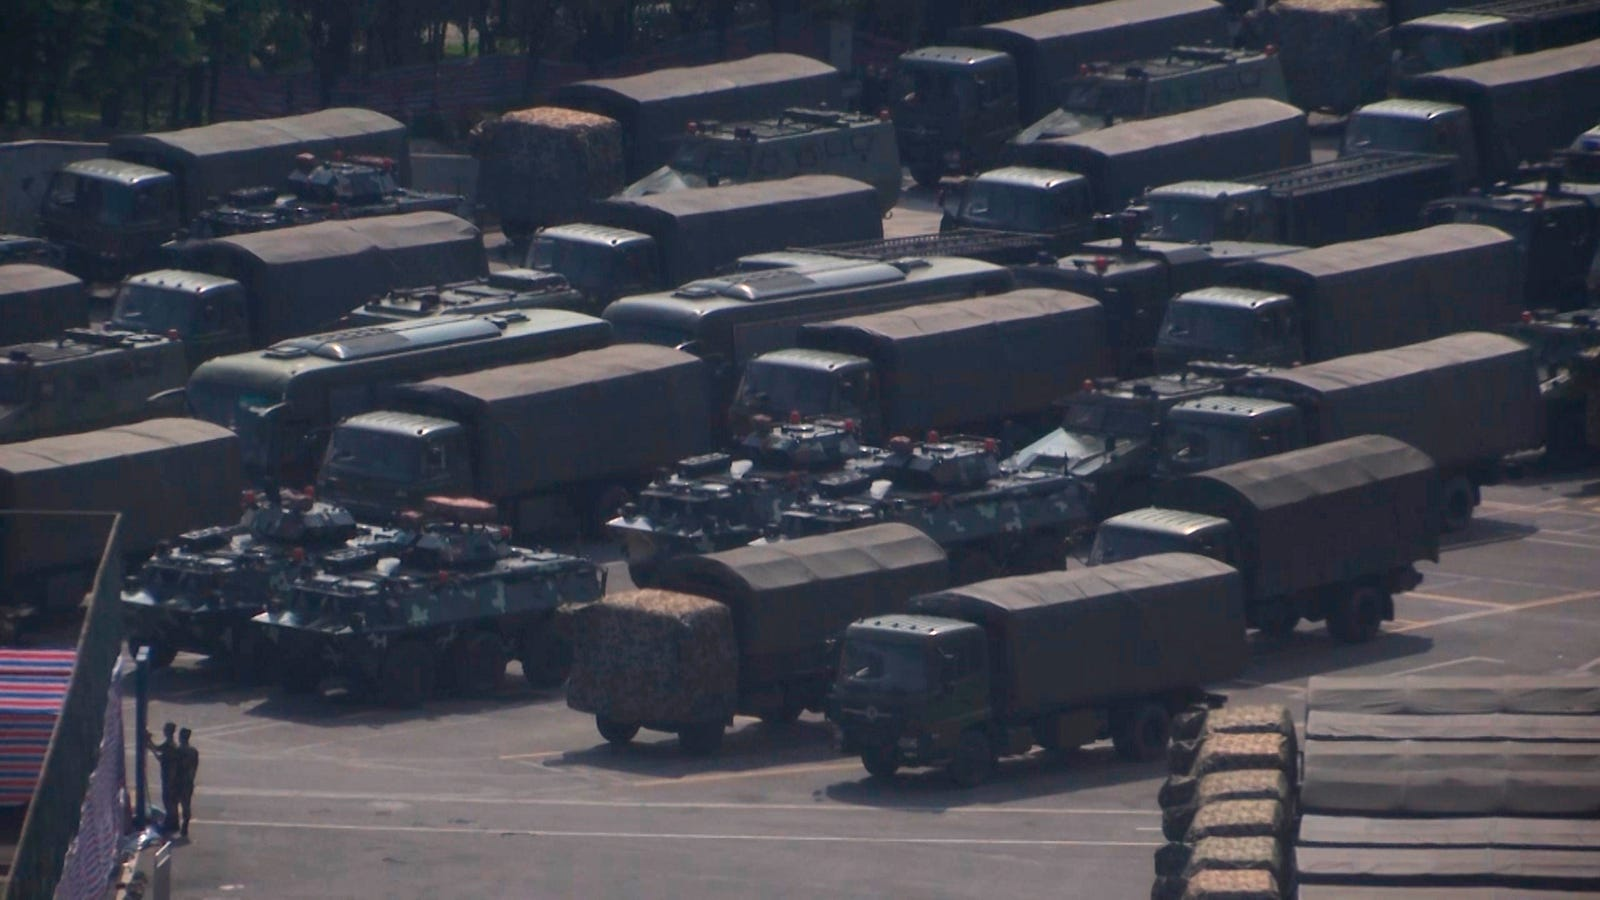 In this image made from video, armed police vehicles are parked outside Shenzhen Bay Stadium in Shenzhen, near Hong Kong, Friday, Aug. 16, 2019. Satellite photos show what appear to be armored personnel carriers and other vehicles belonging to the China's paramilitary People's Armed Police parked in a sports complex in the city of Shenzhen, in what some have interpreted as a threat from Beijing to use increased force against pro-democracy protesters across the border in Hong Kong.